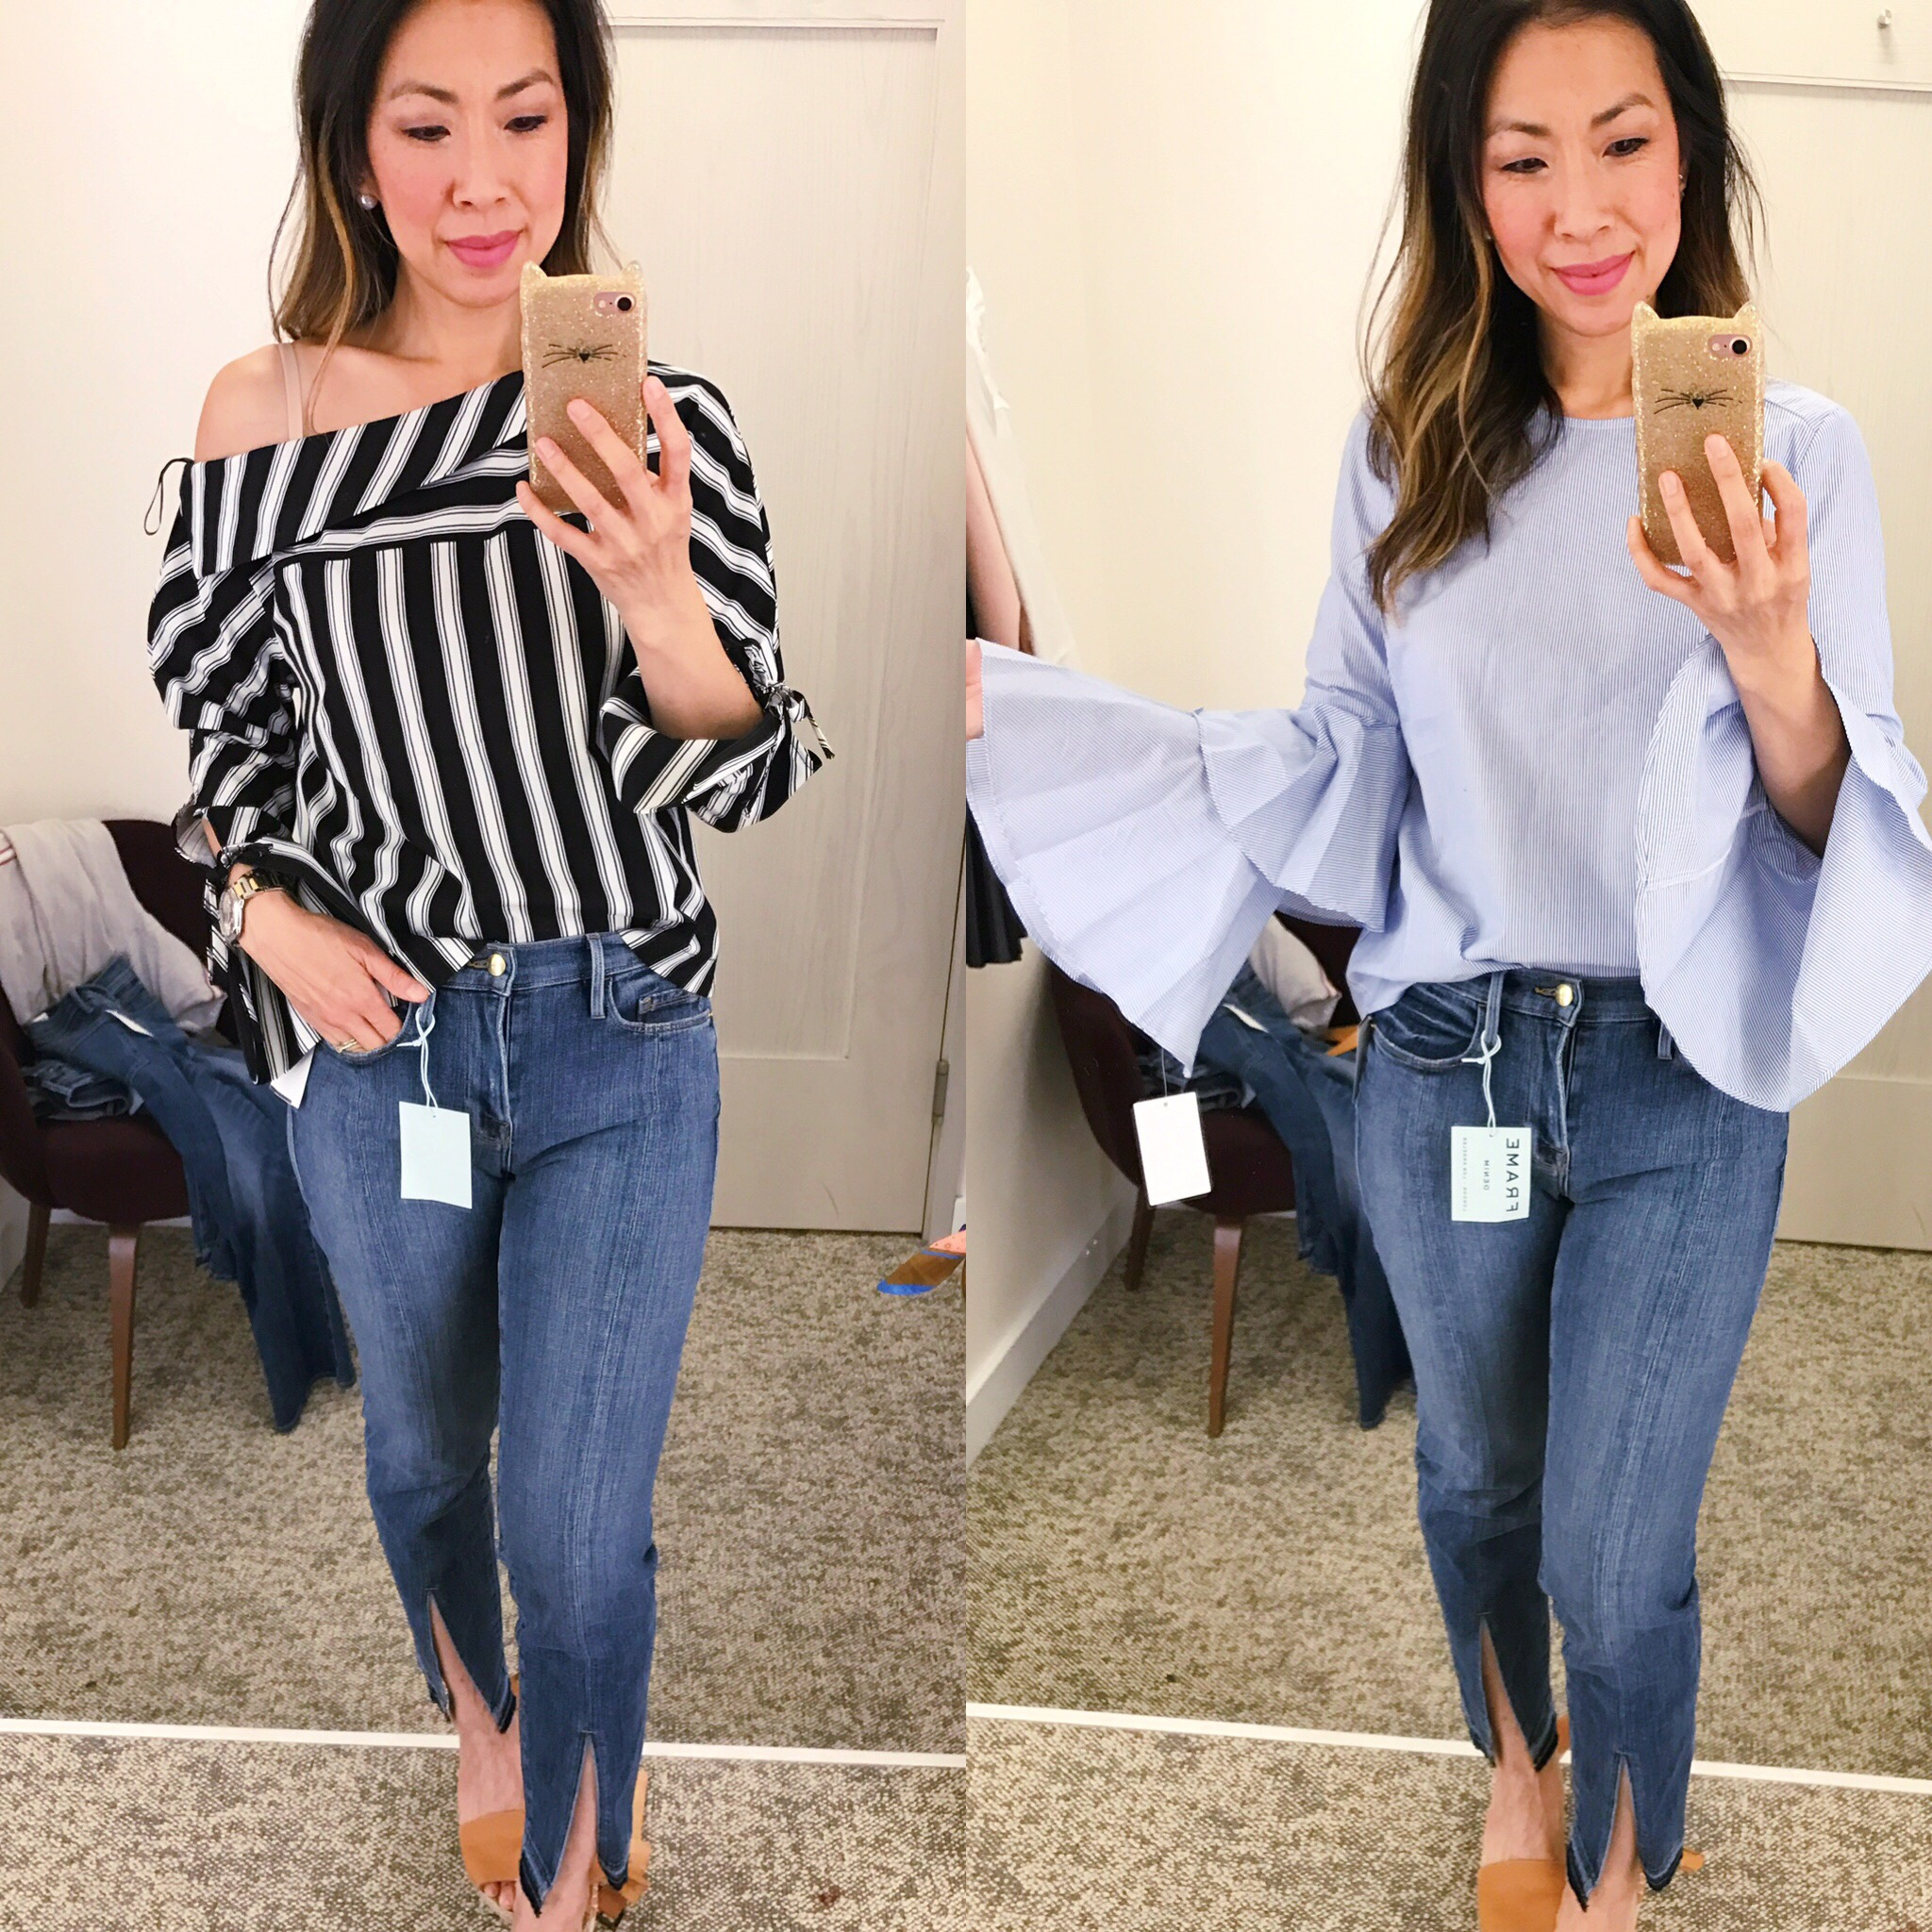 Nordstrom Anniversary Sale Dressing Room Diaries 2017 topshop striped one shoulder top chelsea28 ruffle sleeve top